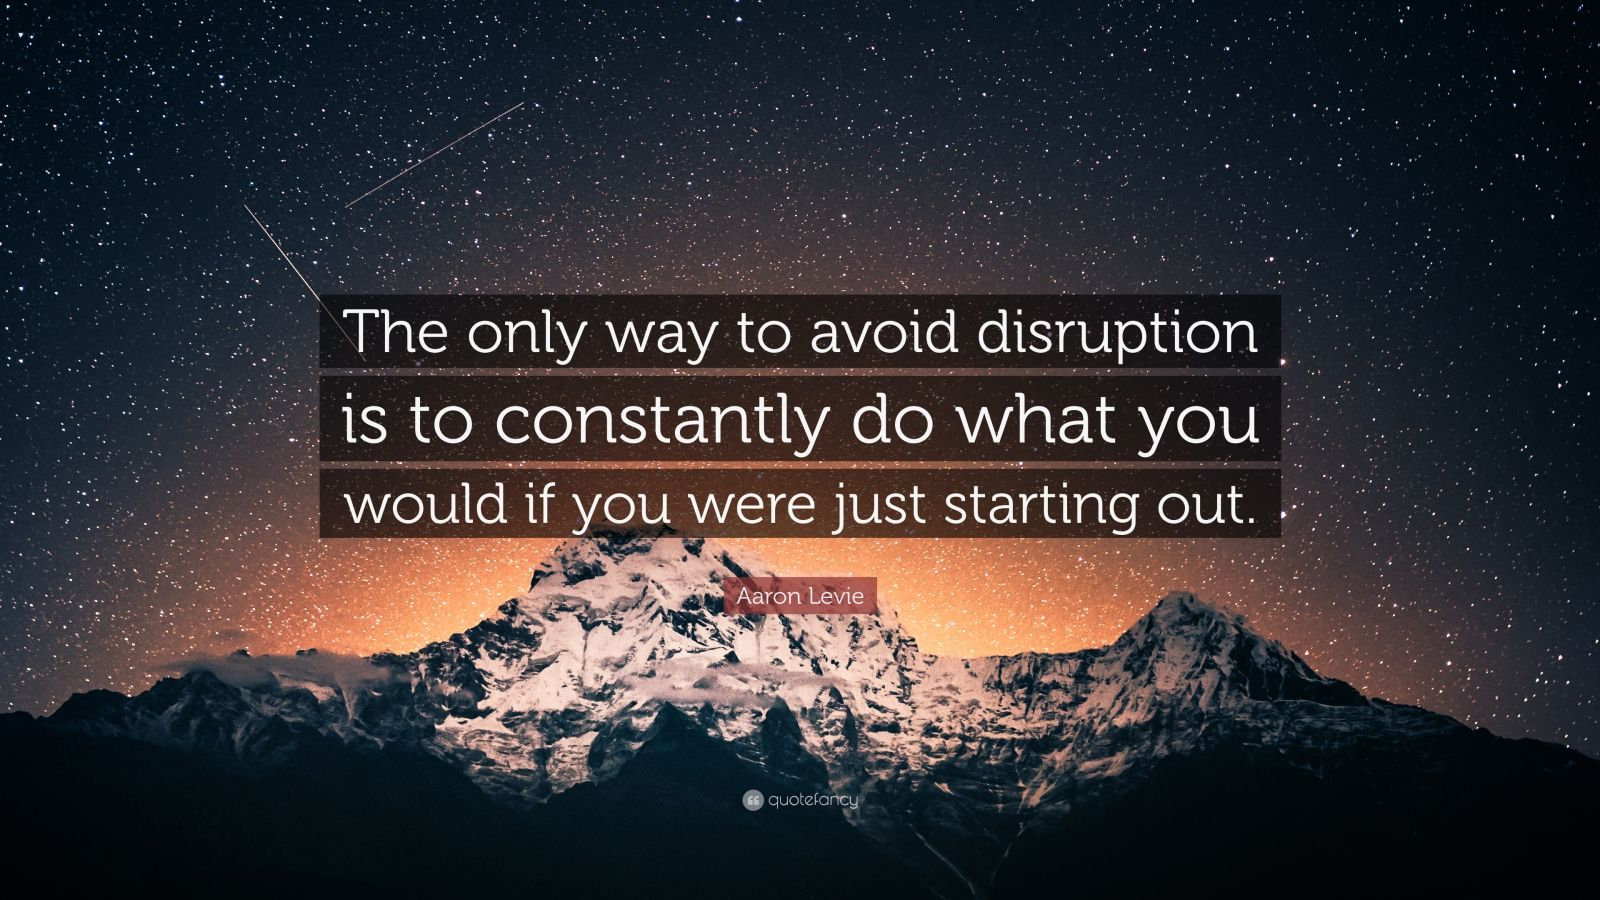 """Aaron Levie Quote: """"The only way to avoid disruption is to constantly do what you would if you were just starting out."""""""